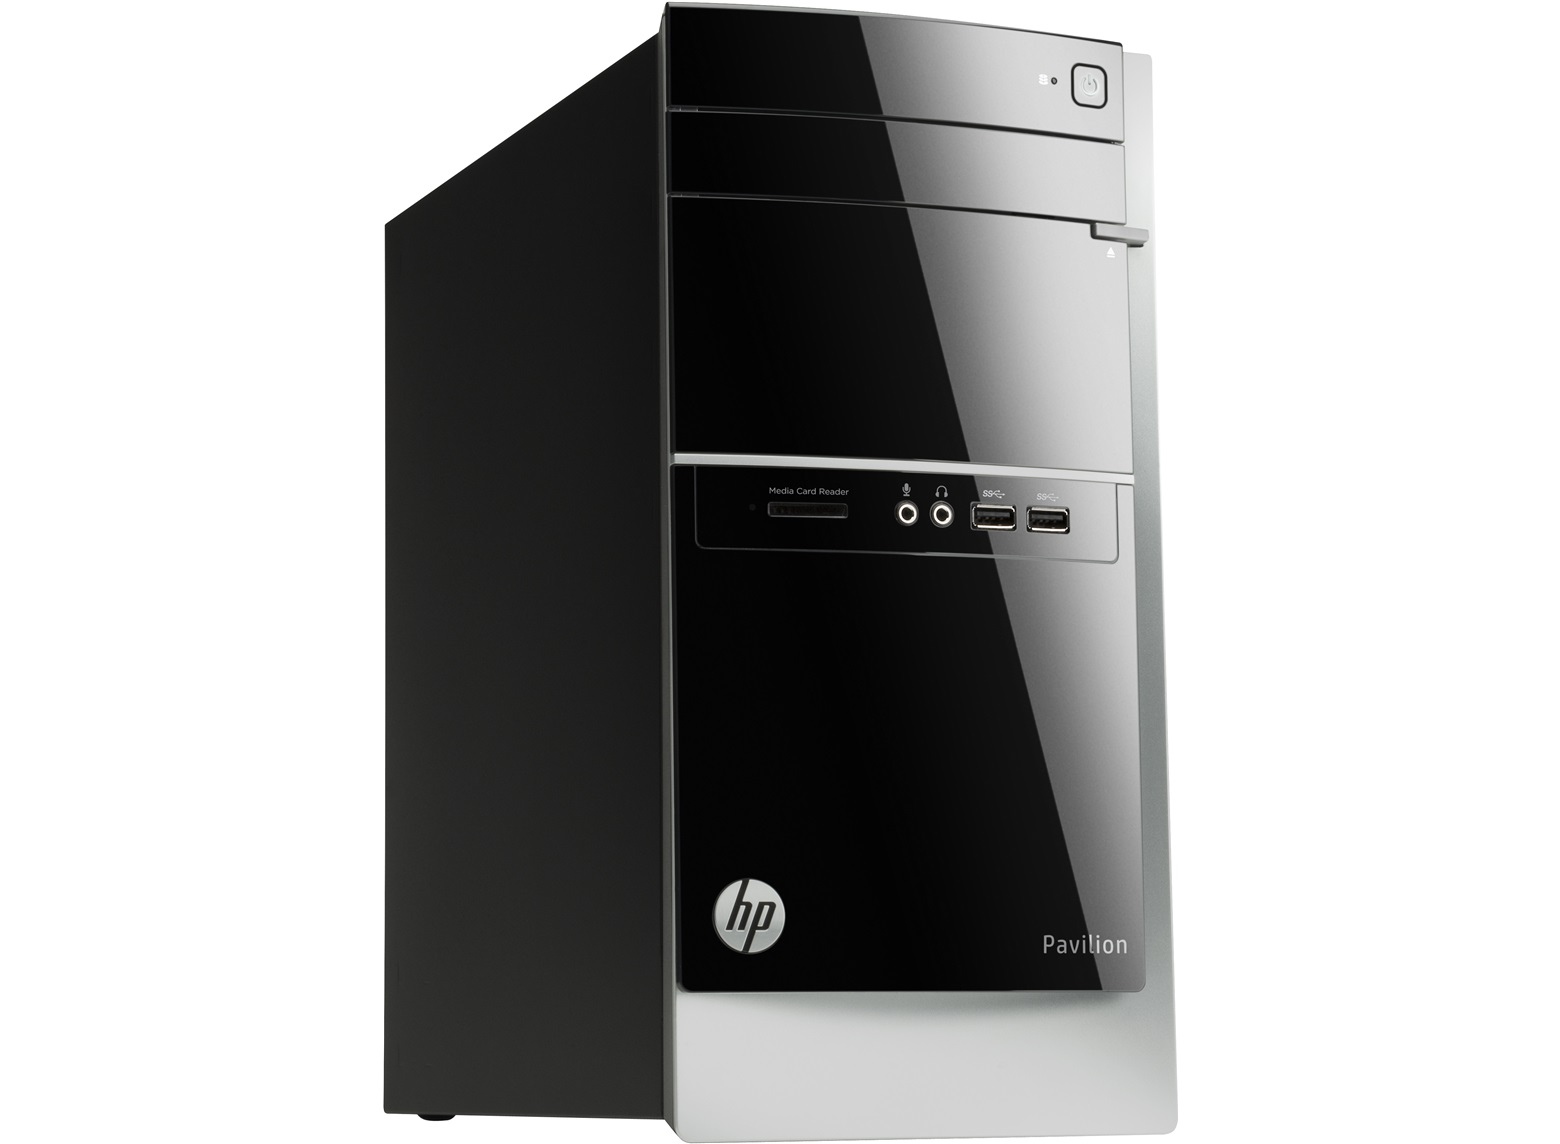 hp pavilion 500 515na tower pc computer qc amd 3 4ghz 8gb 2tb wifi windows 8 1 ebay. Black Bedroom Furniture Sets. Home Design Ideas